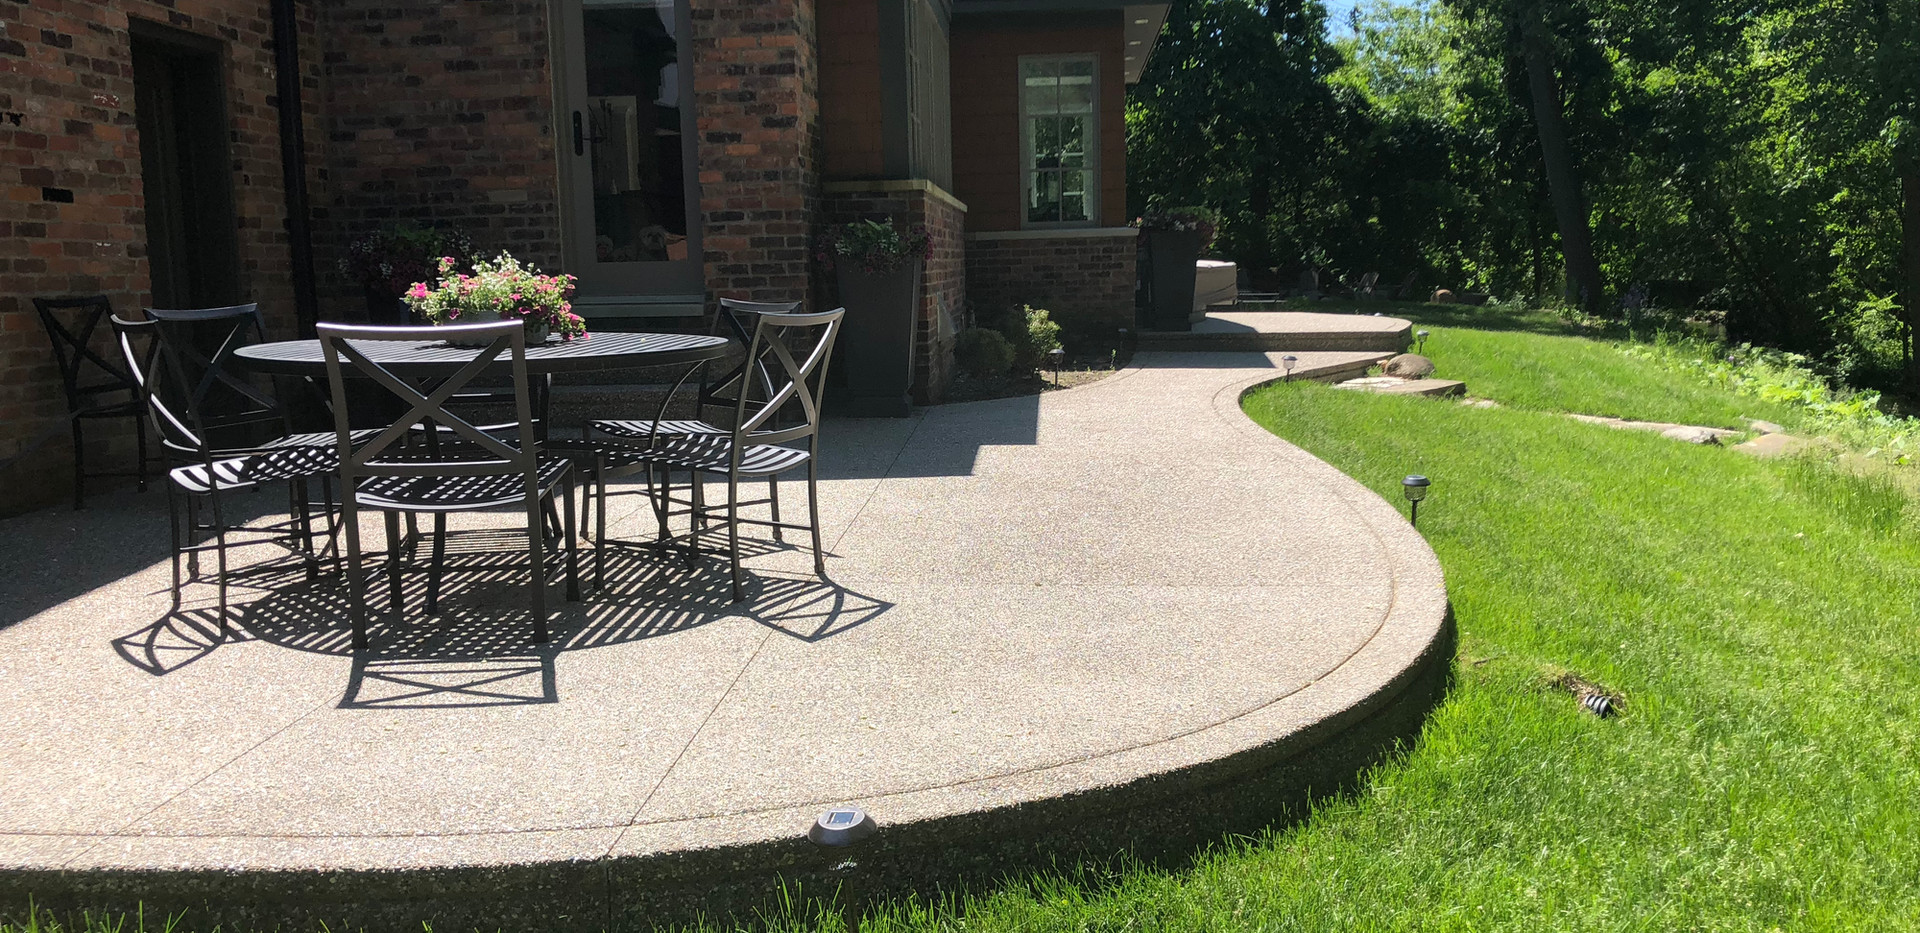 IMG_2605 Exposed aggregate patio photo b